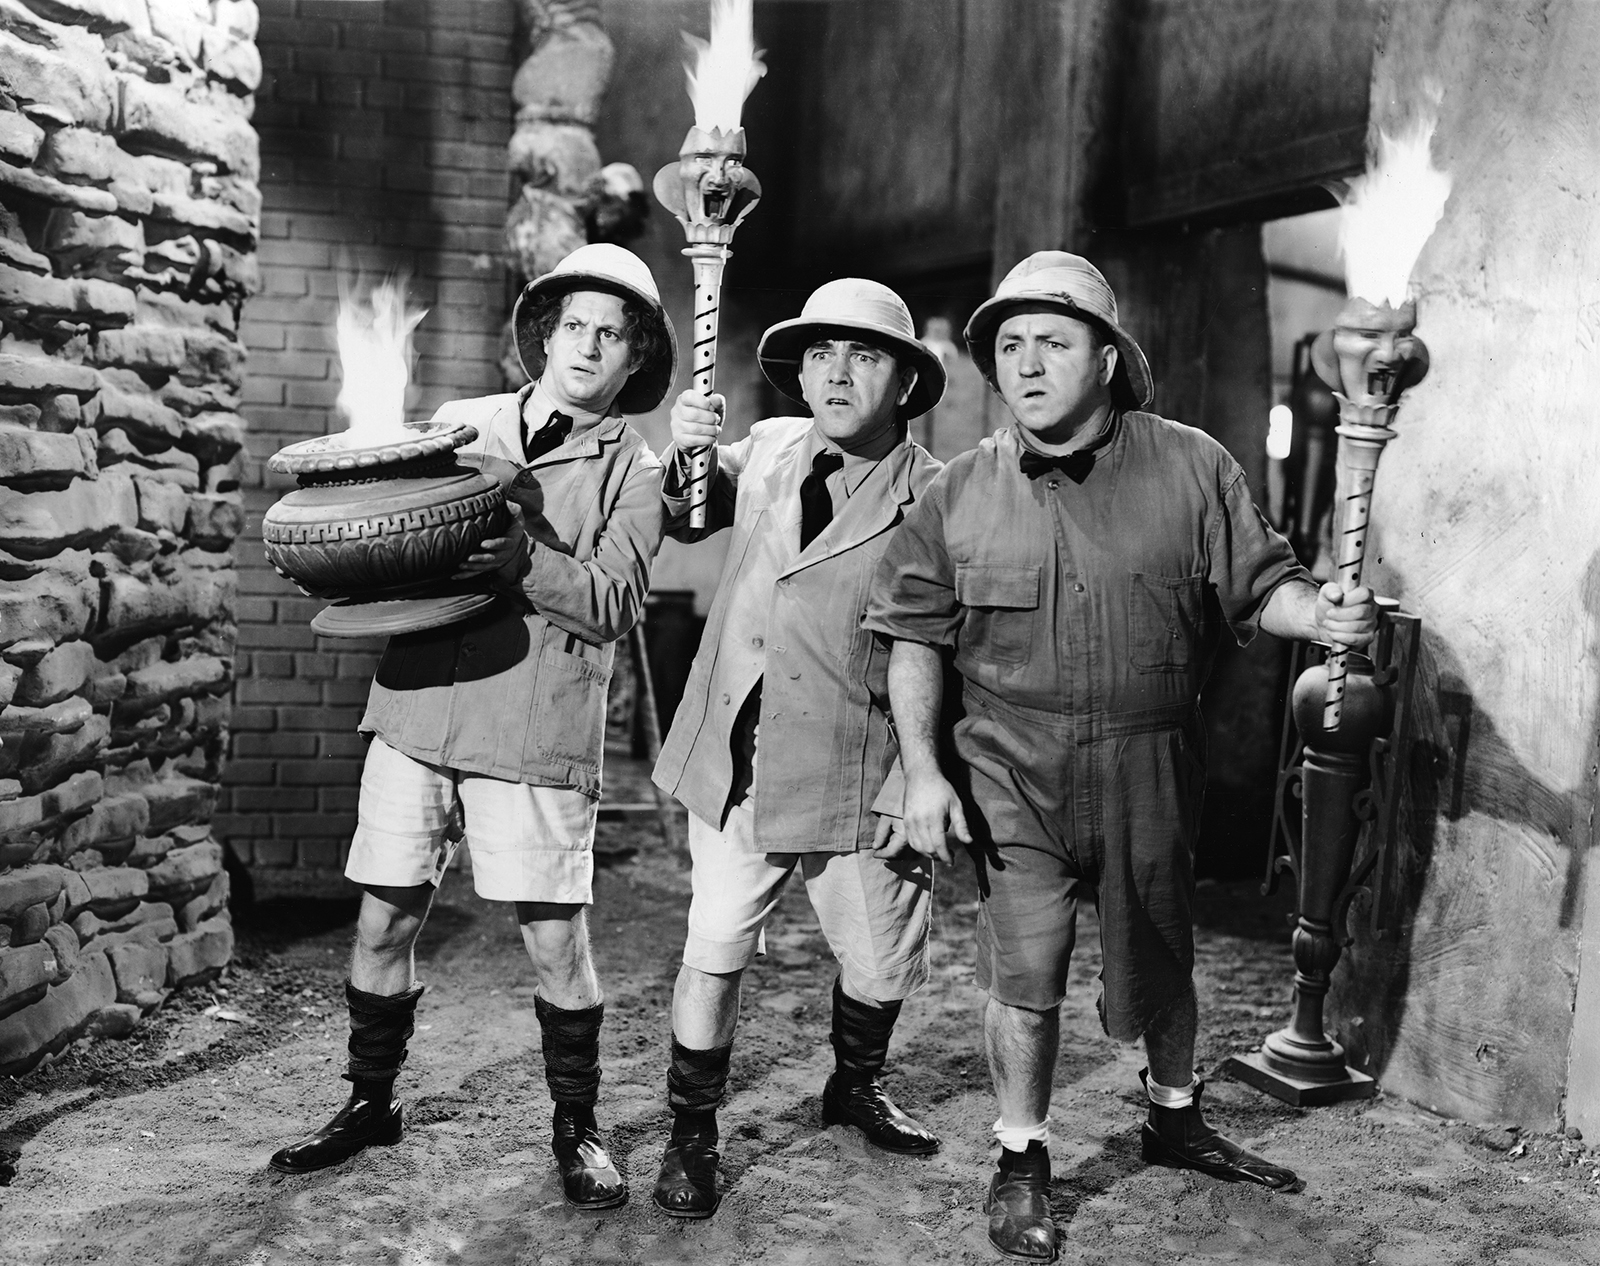 The Three Stooges | Names, Characters, History, & Films | Britannica